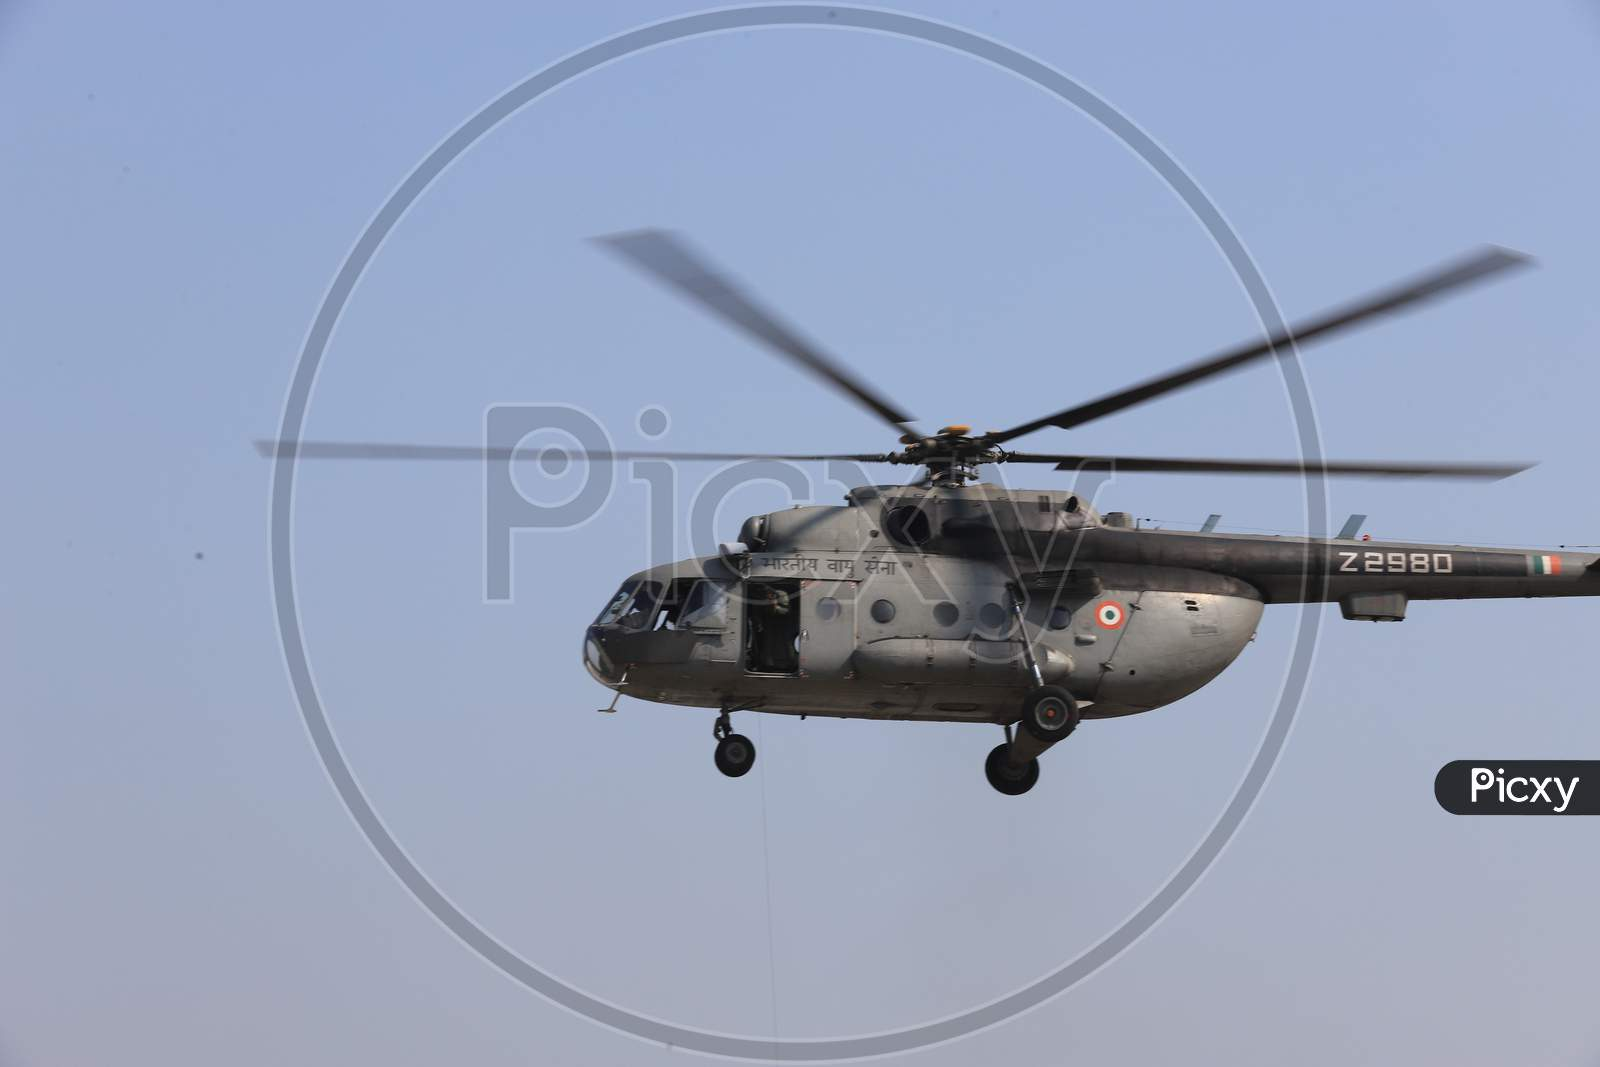 Indian Air Force Z2980 Helicopters Demonstration At an Air Base